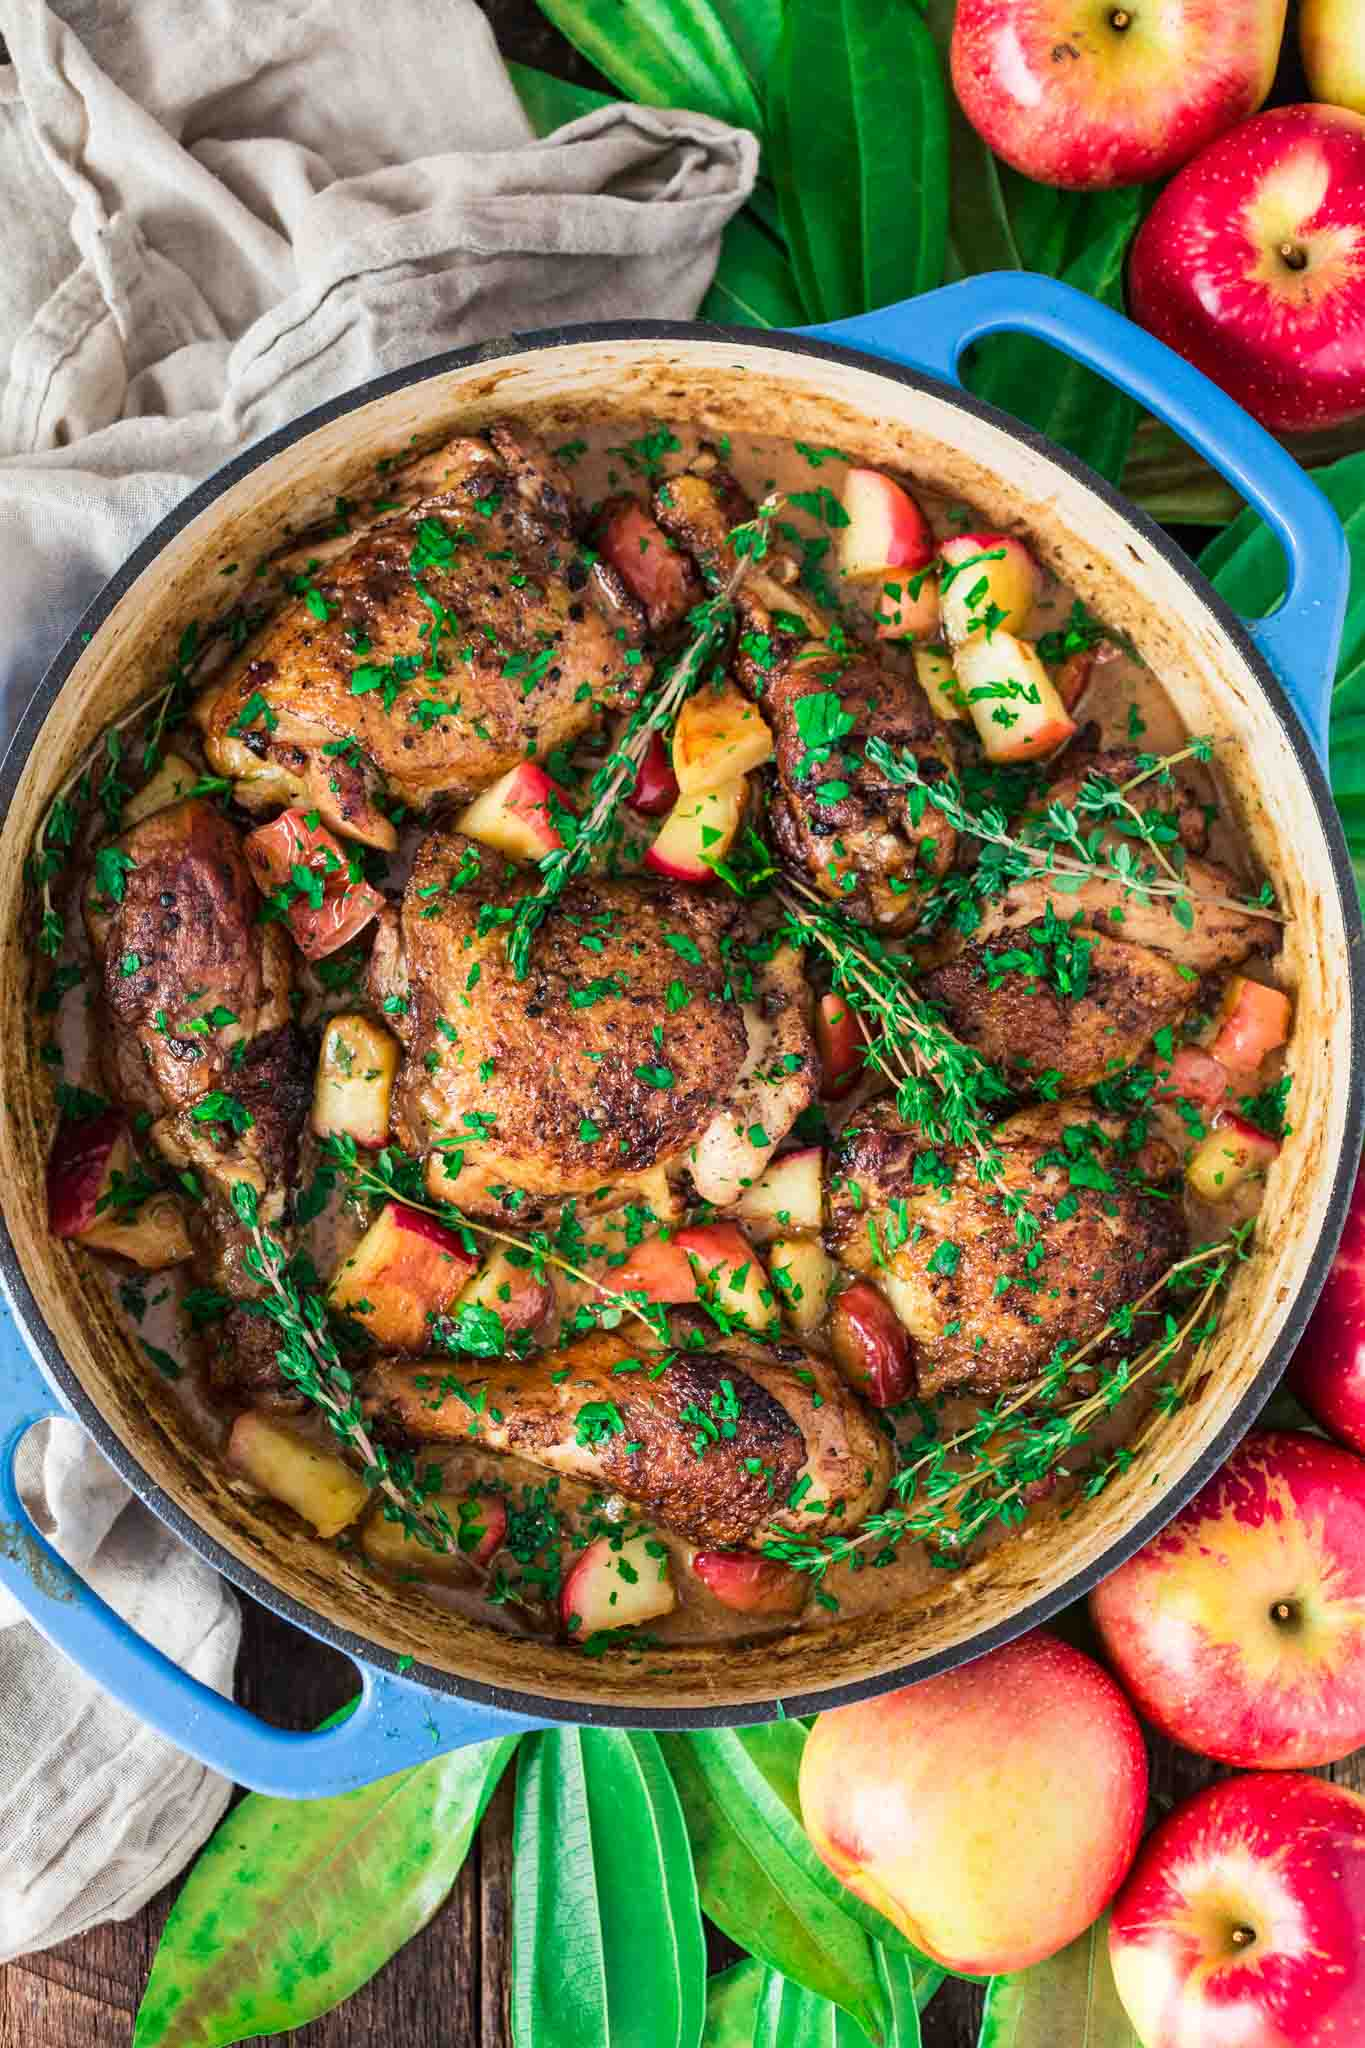 Poulet Vallée D'Auge | www.oliviascuisine.com | Apple lovers, rejoice! This Poulet Vallée D'Auge - a classic French chicken dish - is proof that autumn's favorite fruit is good for more than pies and works great in savory dishes too.